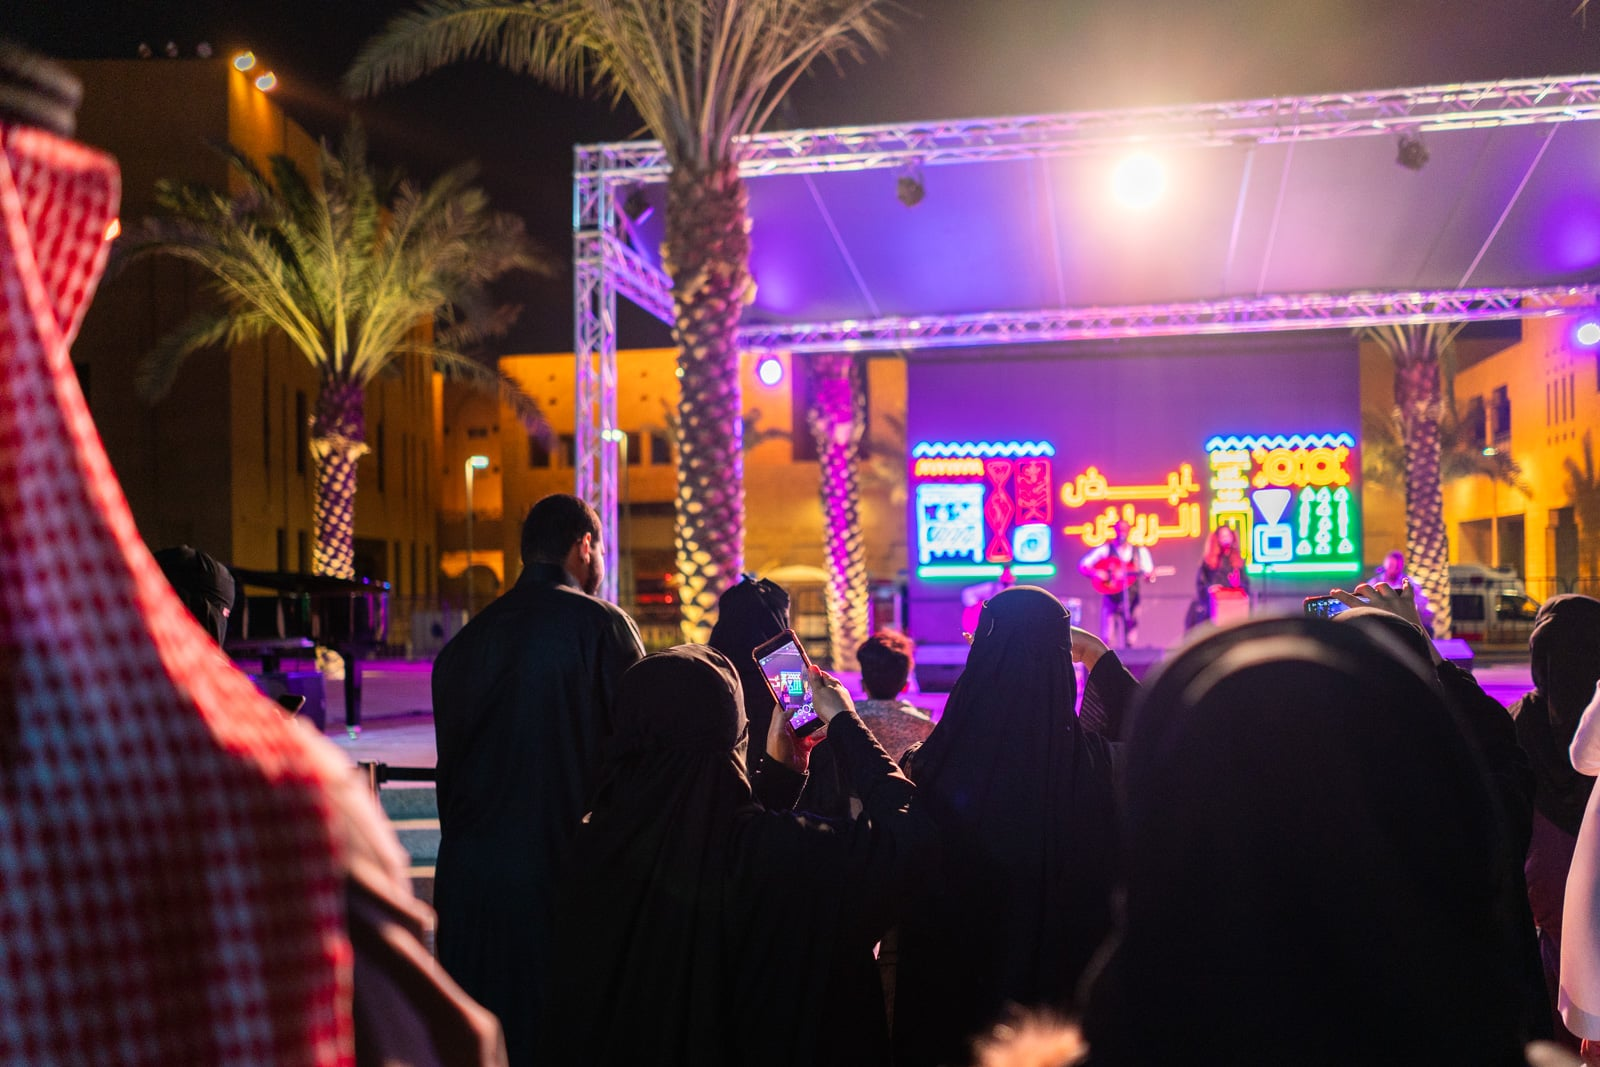 Women taking photos at a concert in Riyadh, Saudi Arabia